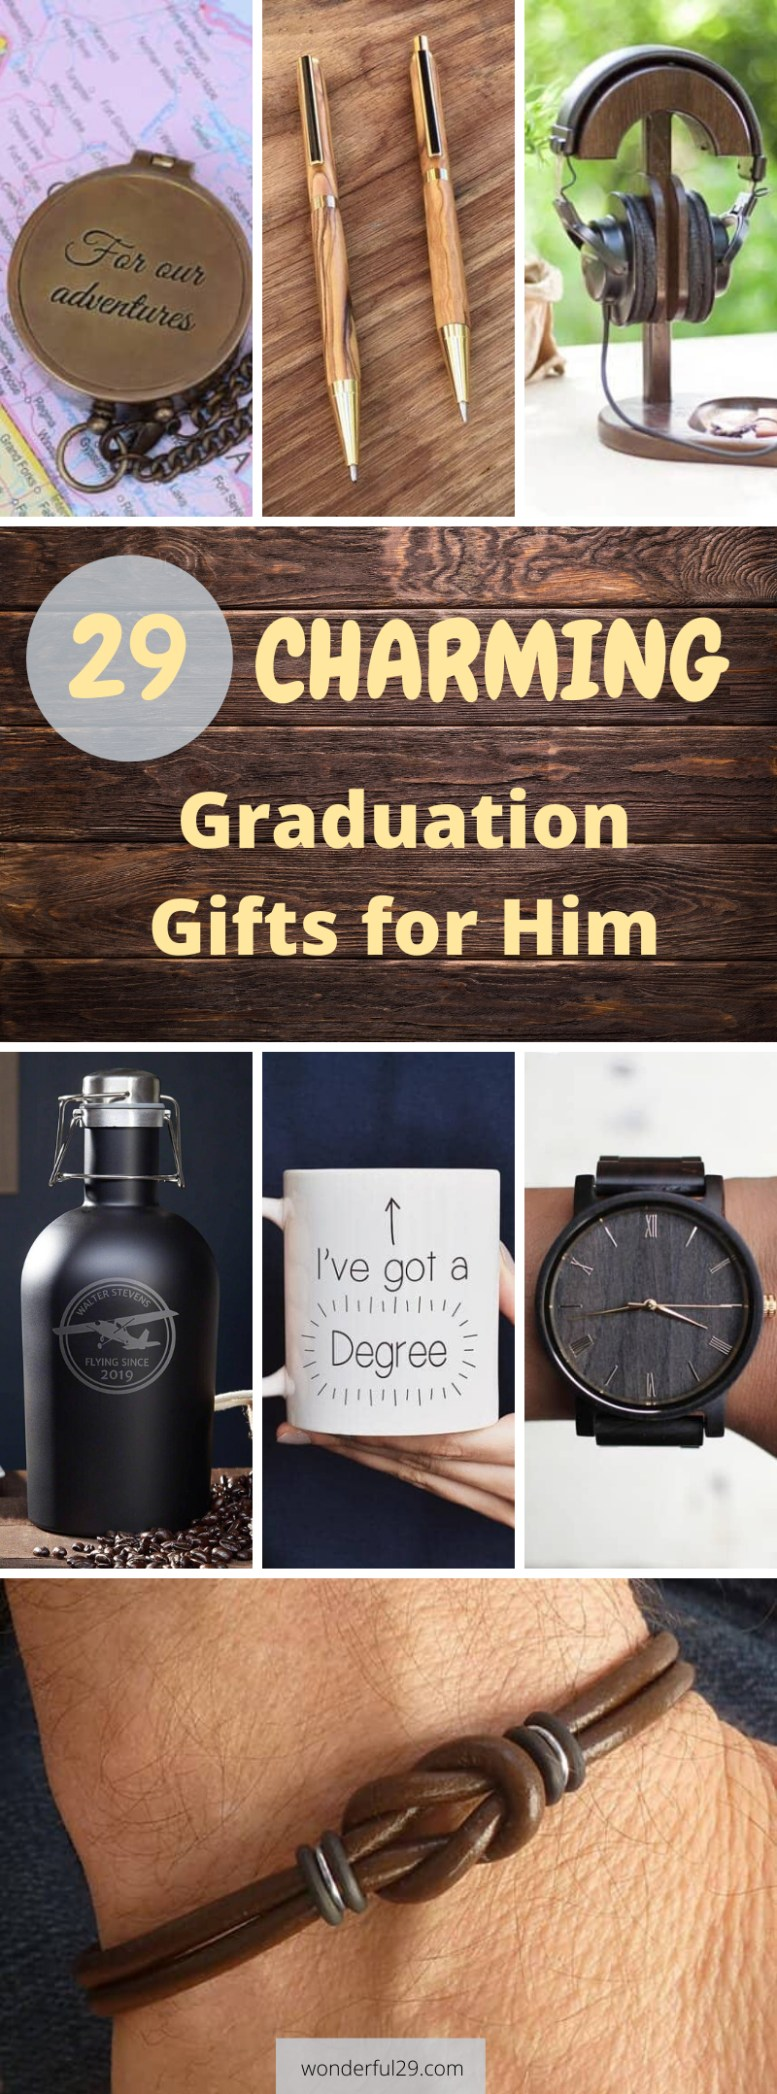 Graduation Gift Ideas for Him